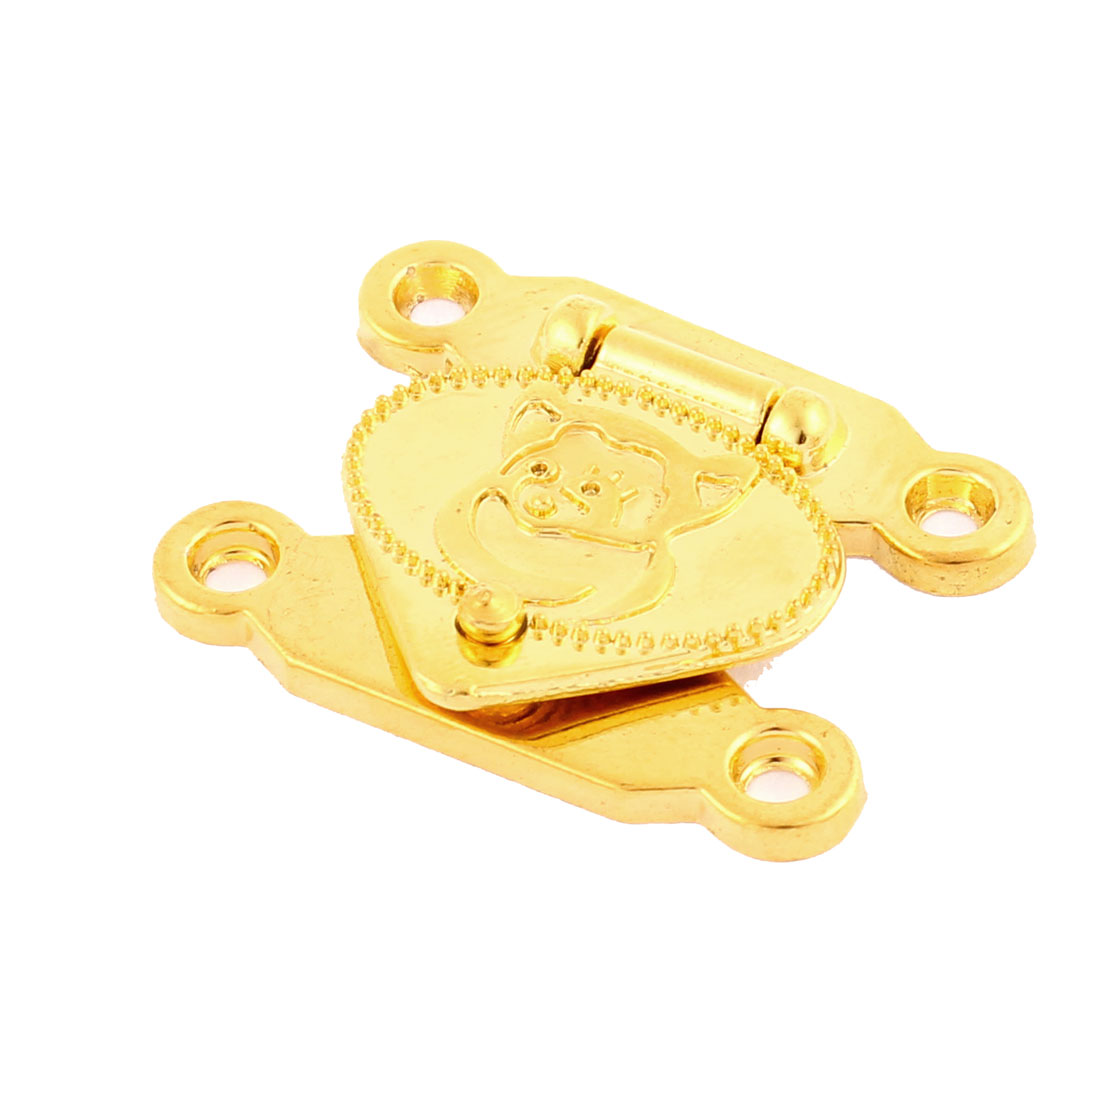 Wooden Case Jewellery Box Snap Closure Clasp Hasp Latch Set Gold Tone